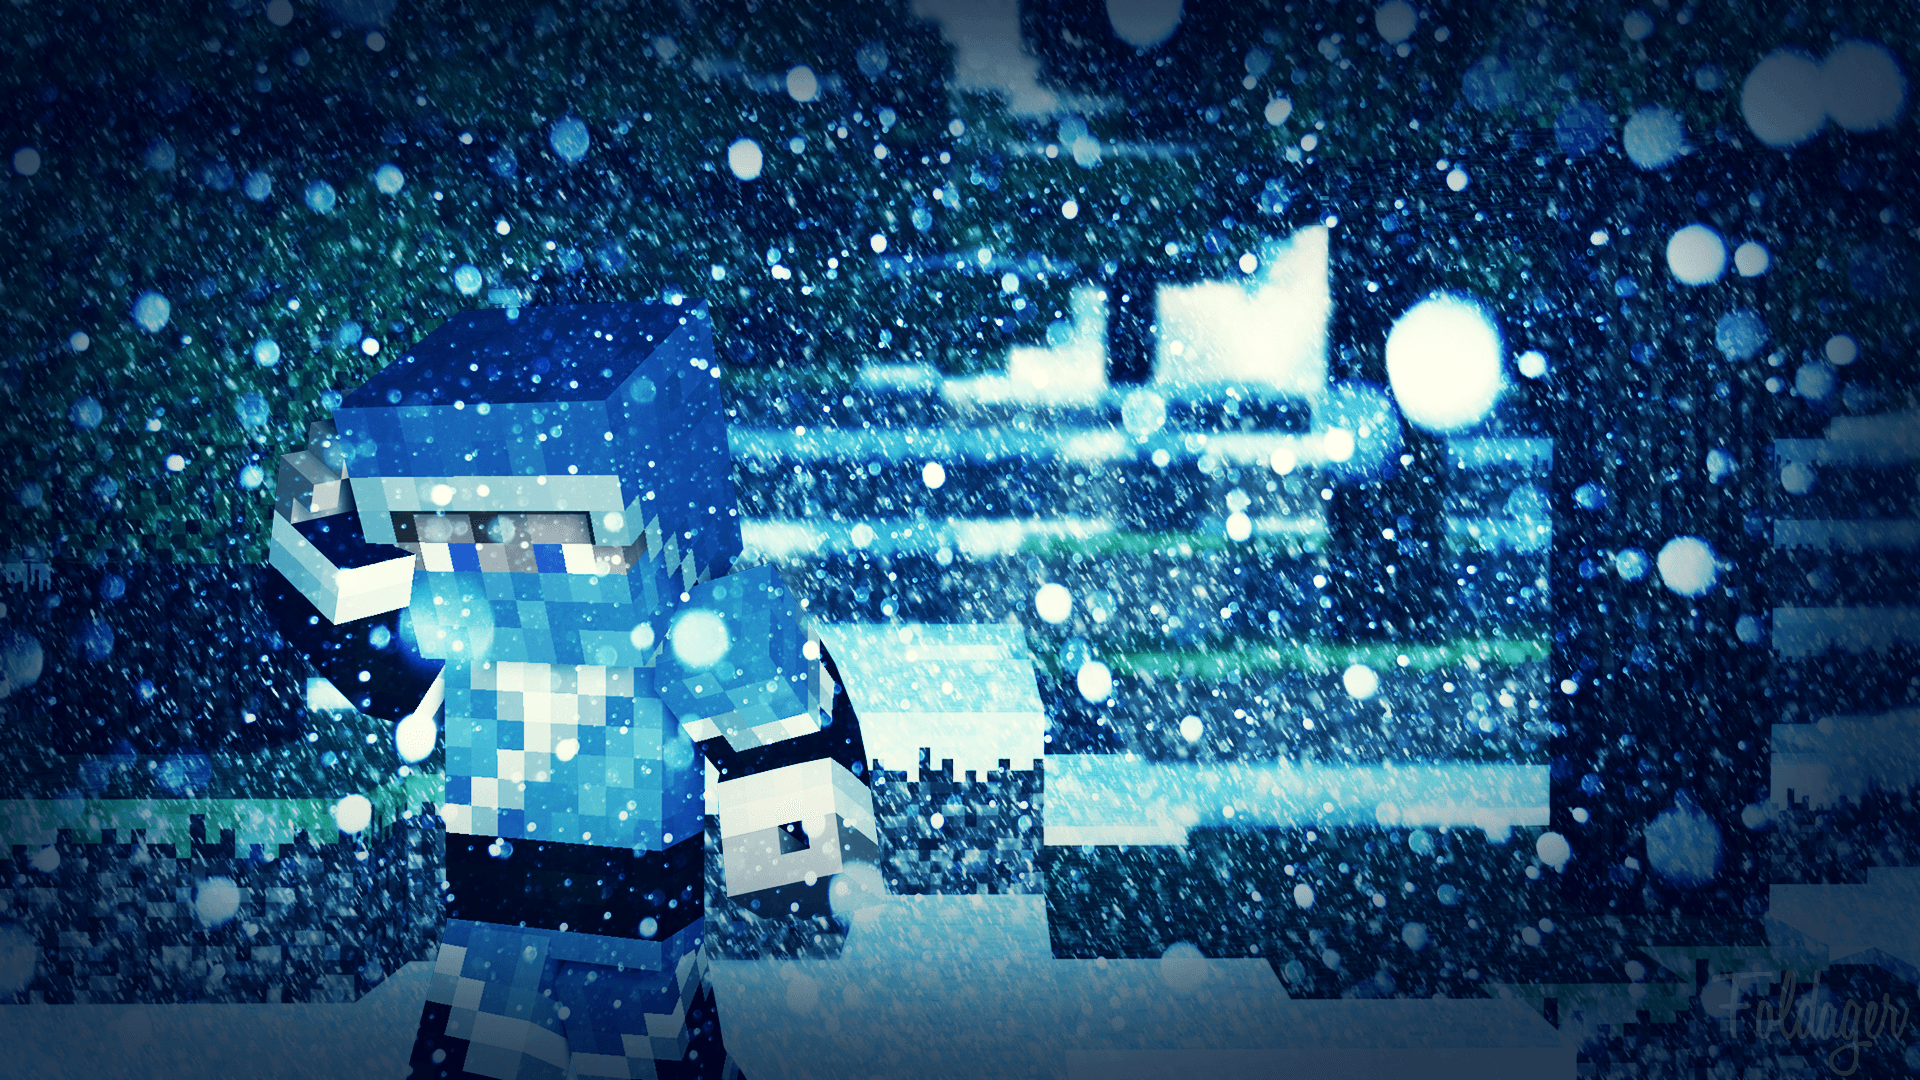 snowy_day__minecraft_wallpaper___1920x1080__by_thefoldager-d6petoa